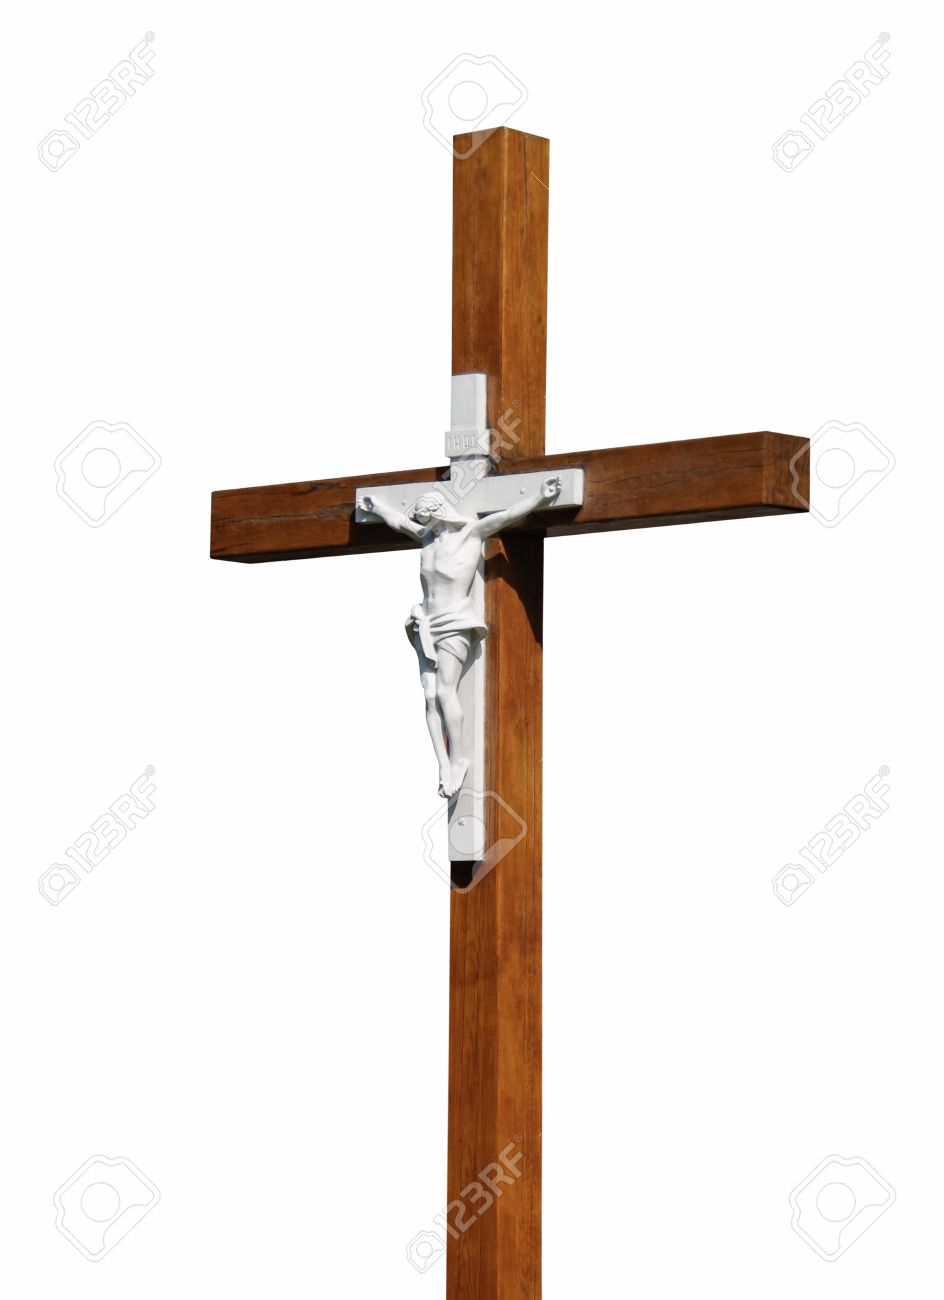 crucifixion jesus christ on the cross crucifix biblical